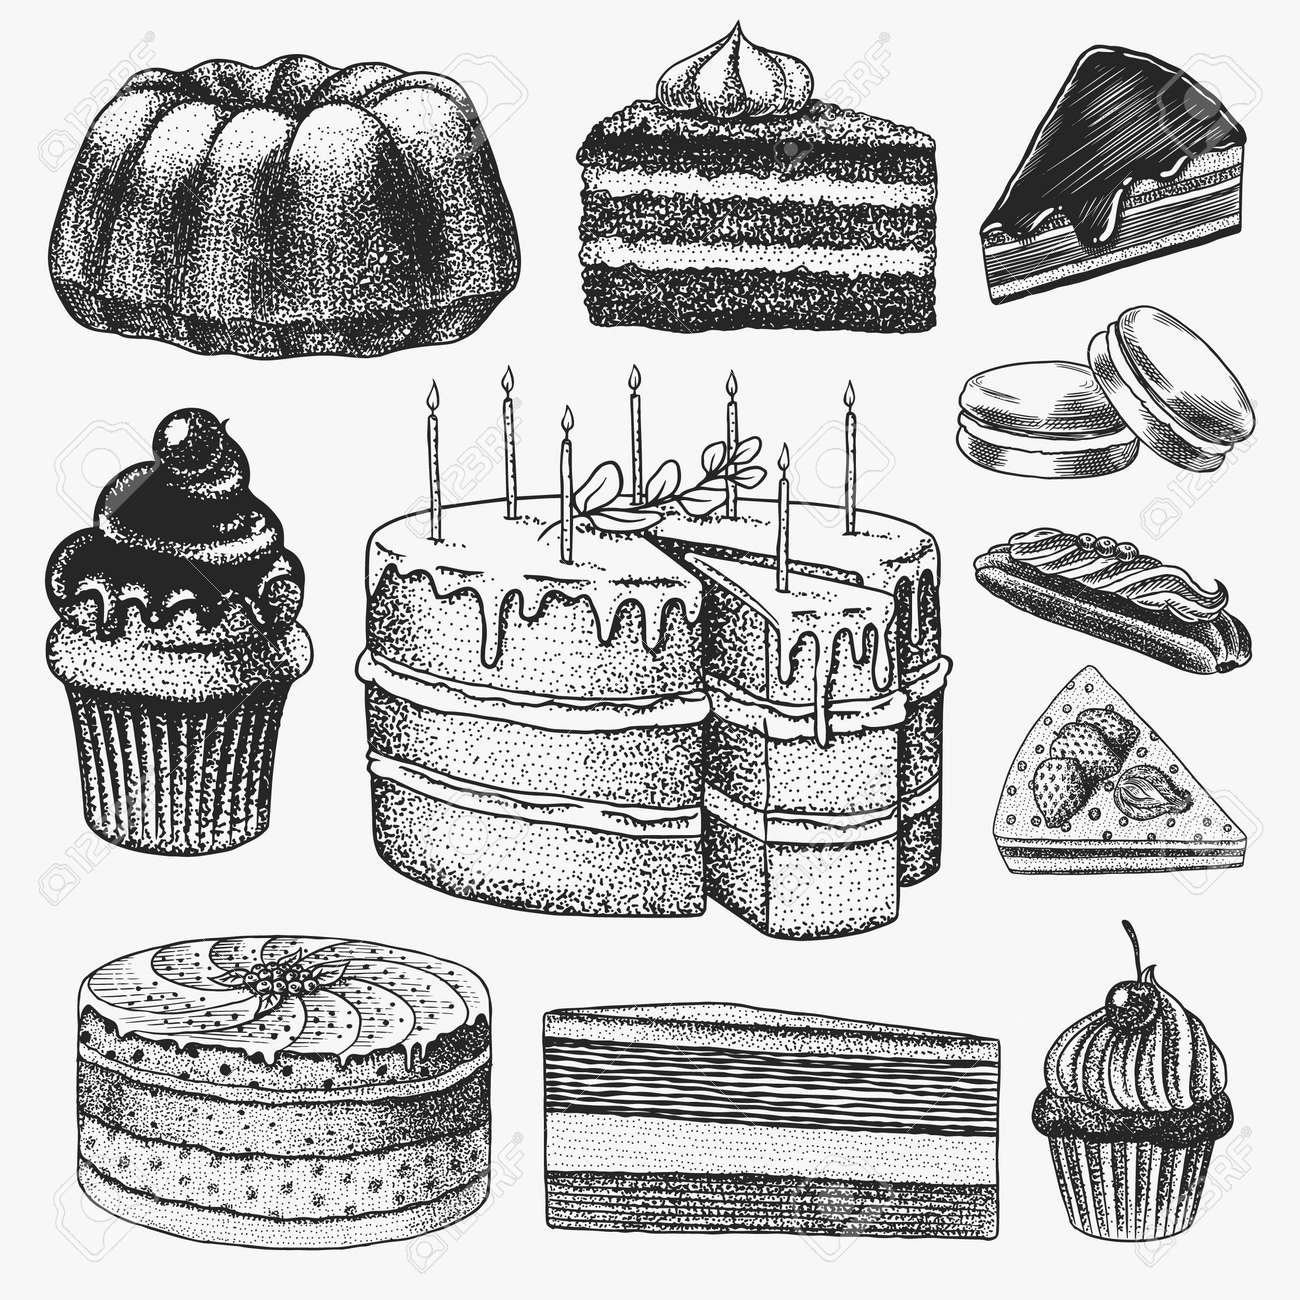 Cakes and cream tarts, fruit desserts and muffins. Chocolate Donuts, Sweet Food. Hand drawn pastries. Vintage engraved sketch. Vector illustration for a banner or menu of a cafe and restaurant. - 159988702